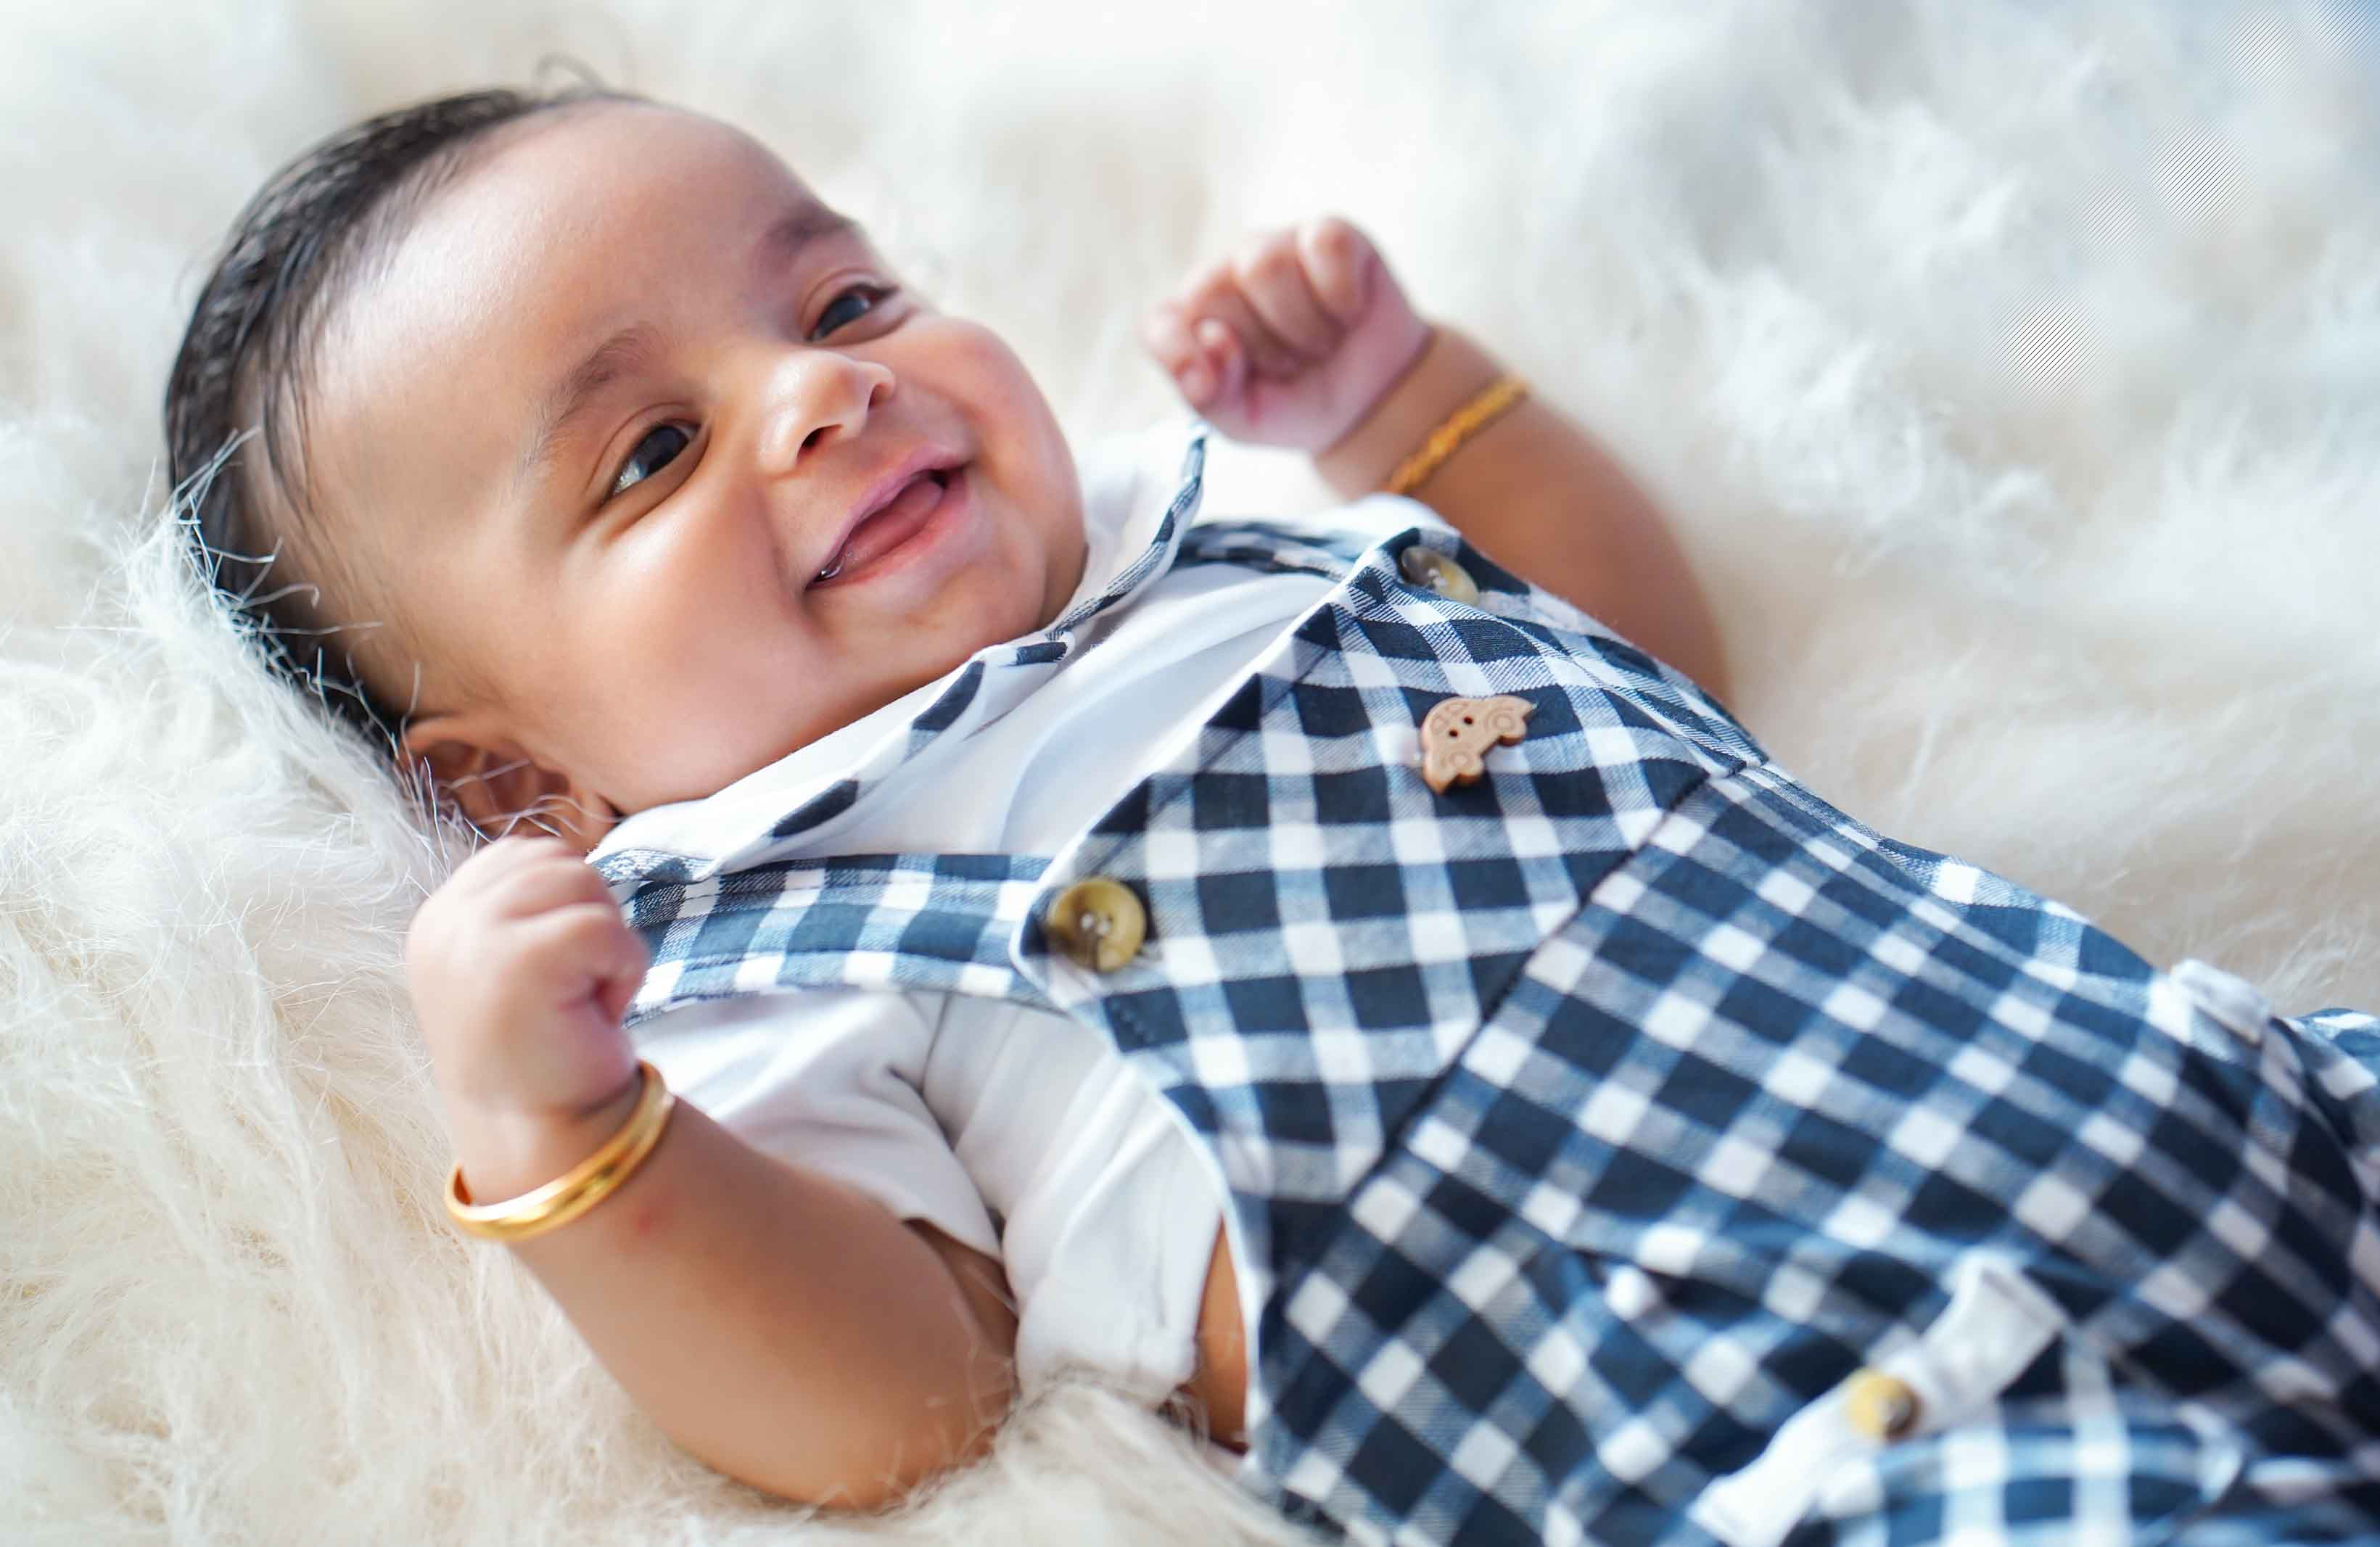 Baby photographer in Thrissur,kerala